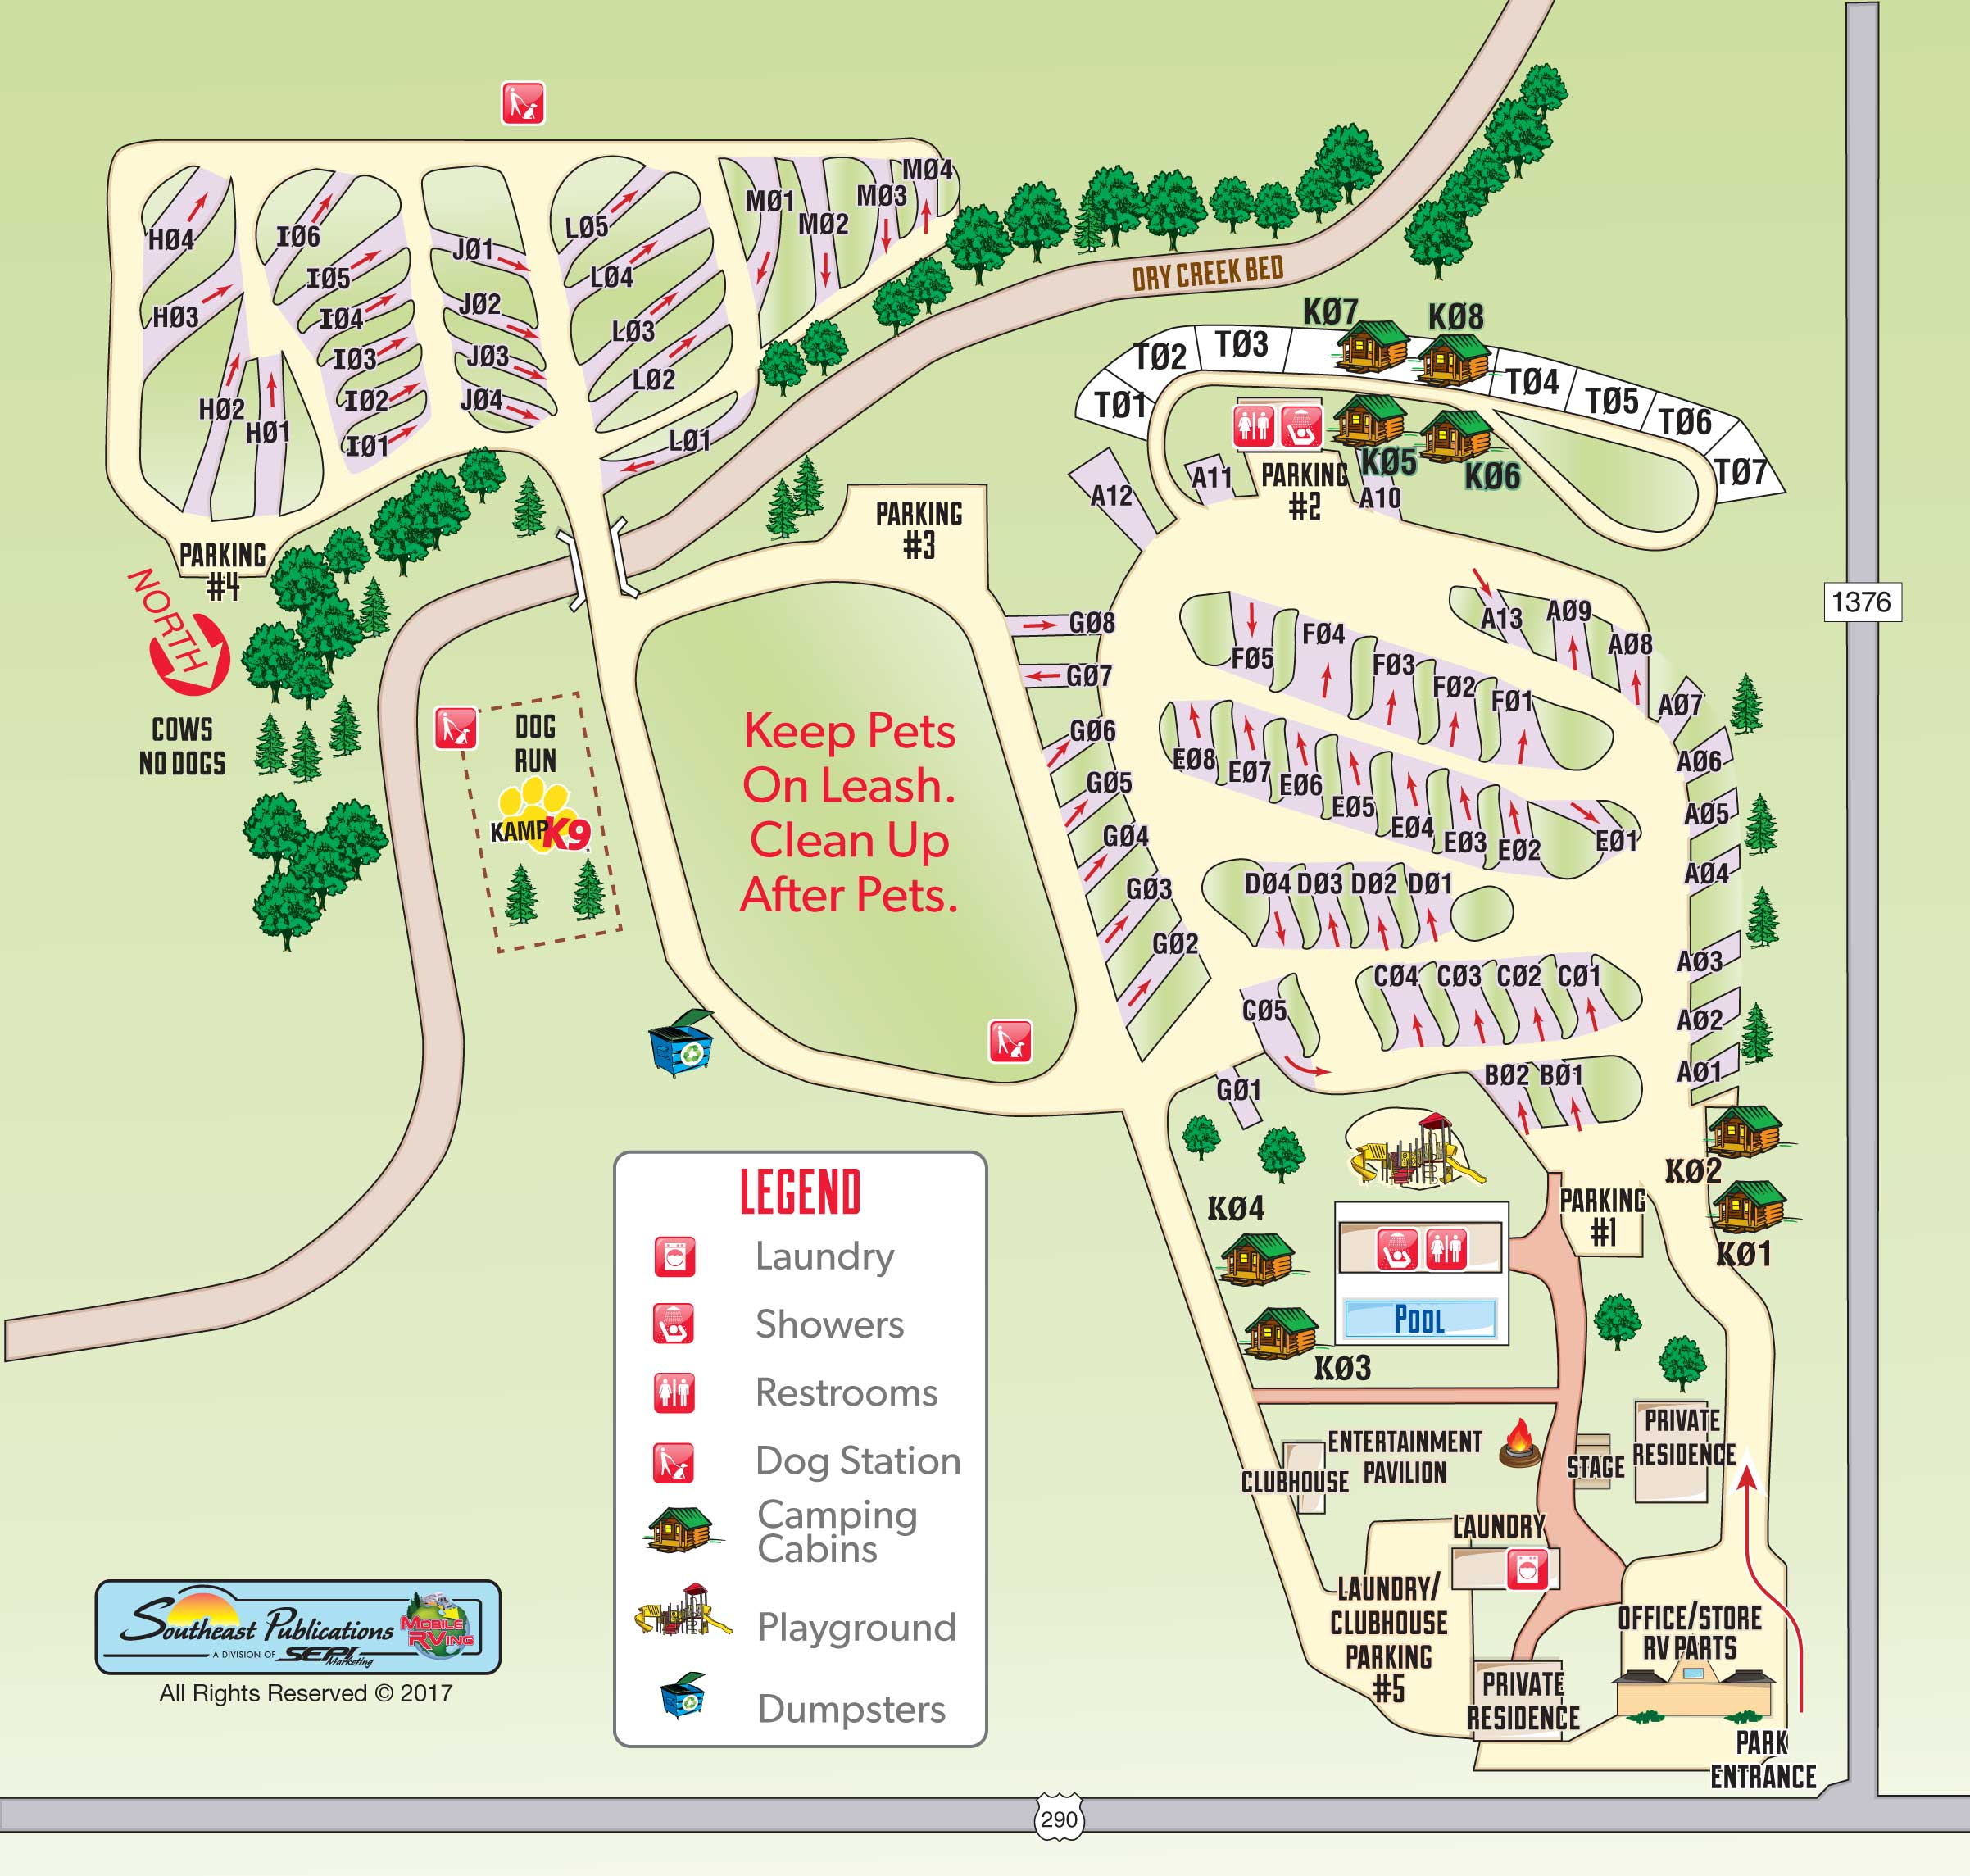 Fredericksburg Texas Campground Fredericksburg Texas KOA - Koa us map